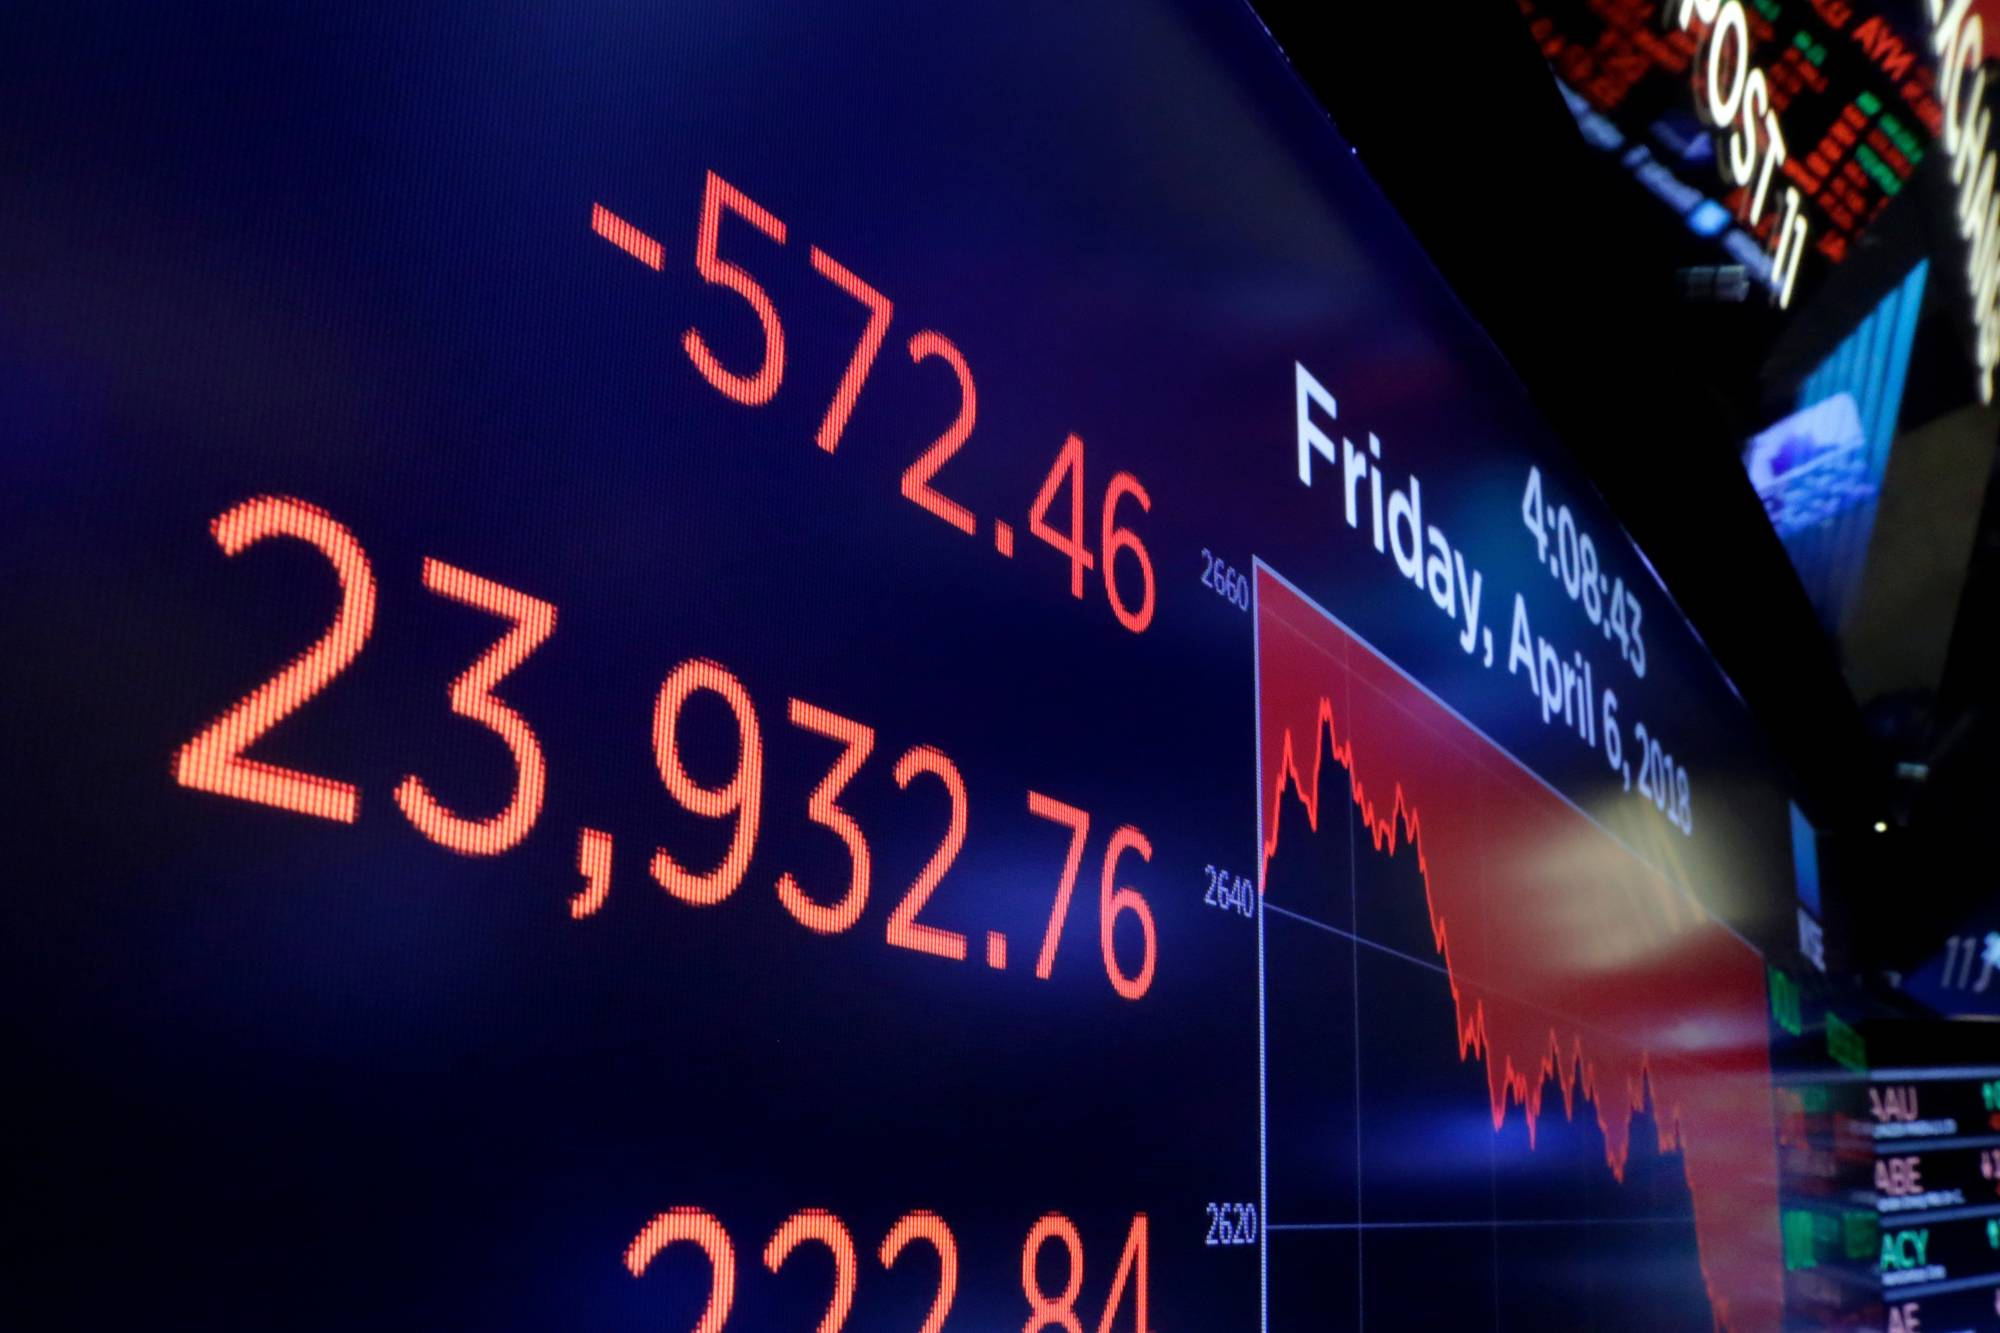 Riding the stock market waves to a $1M TSP | Federal News